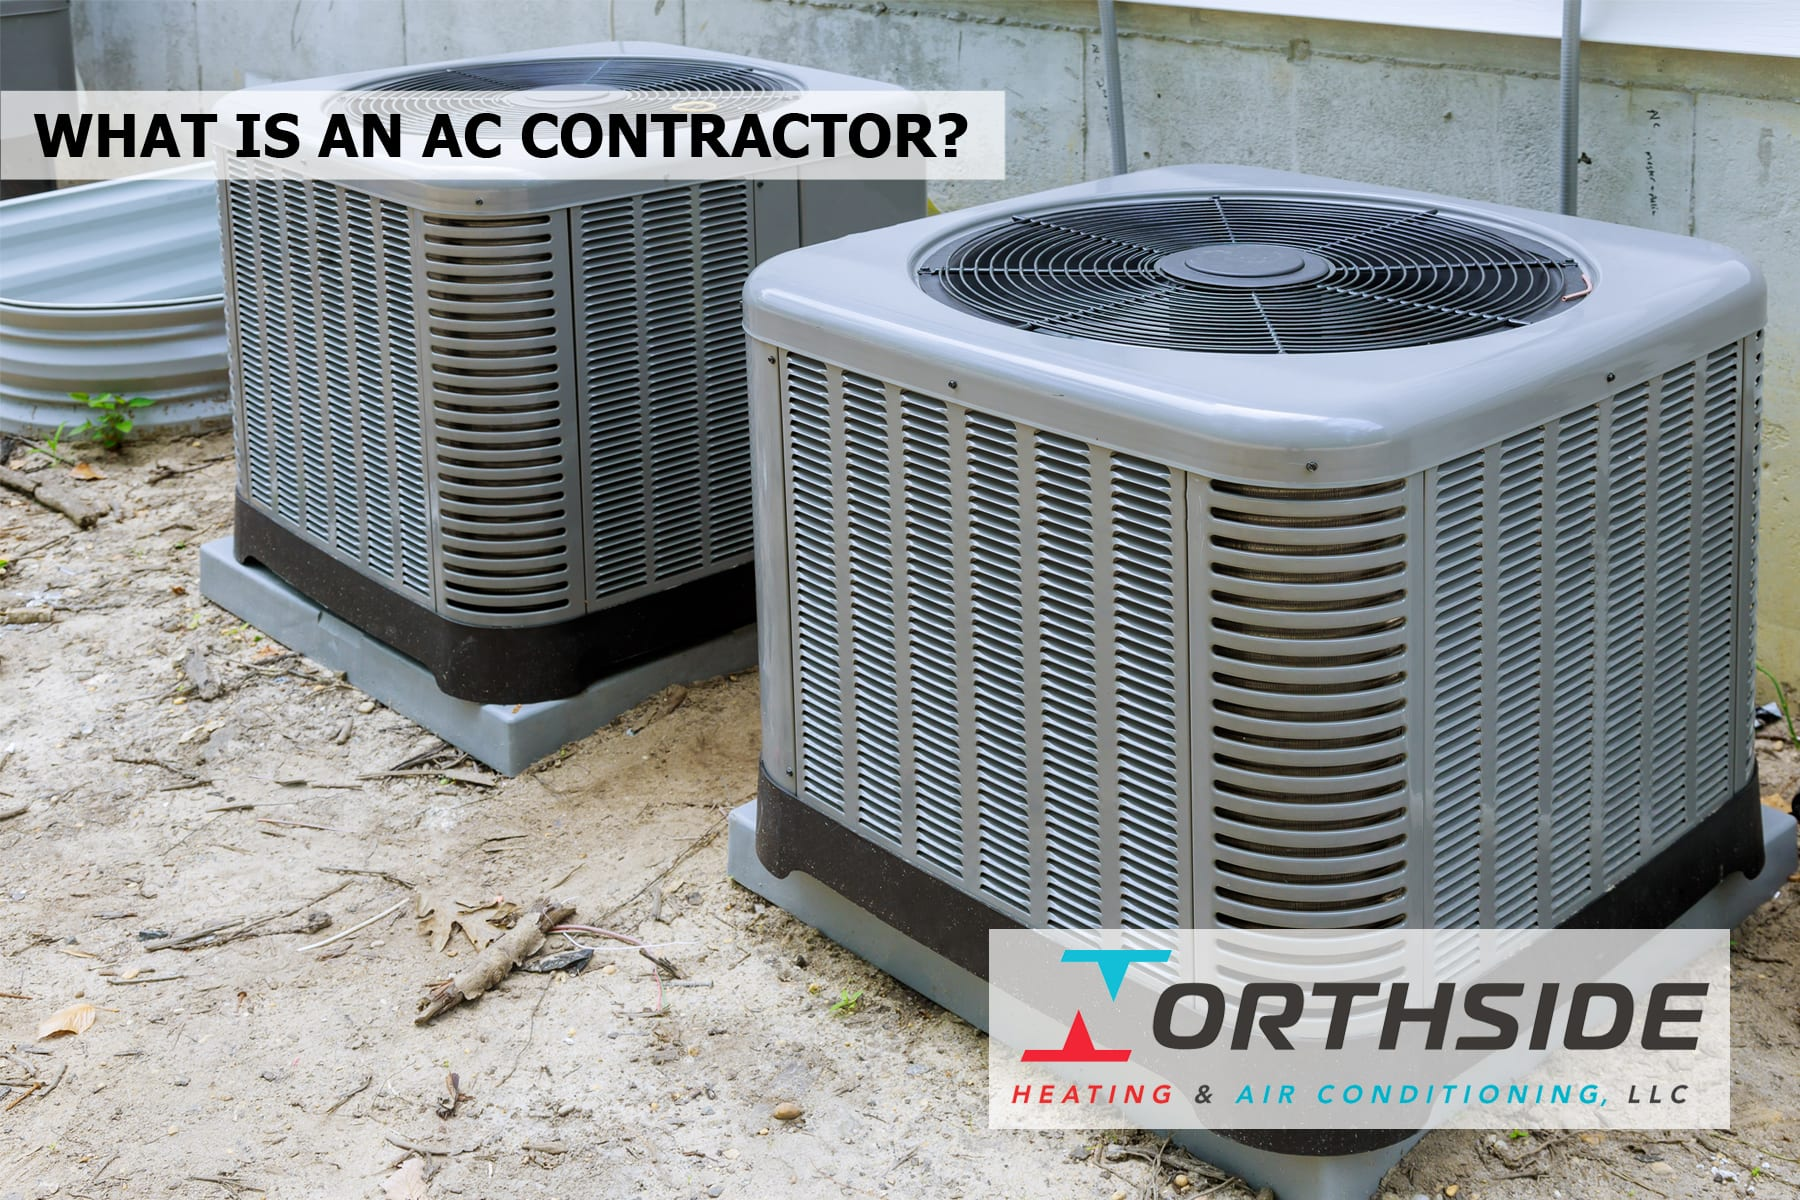 What Is An AC Contractor